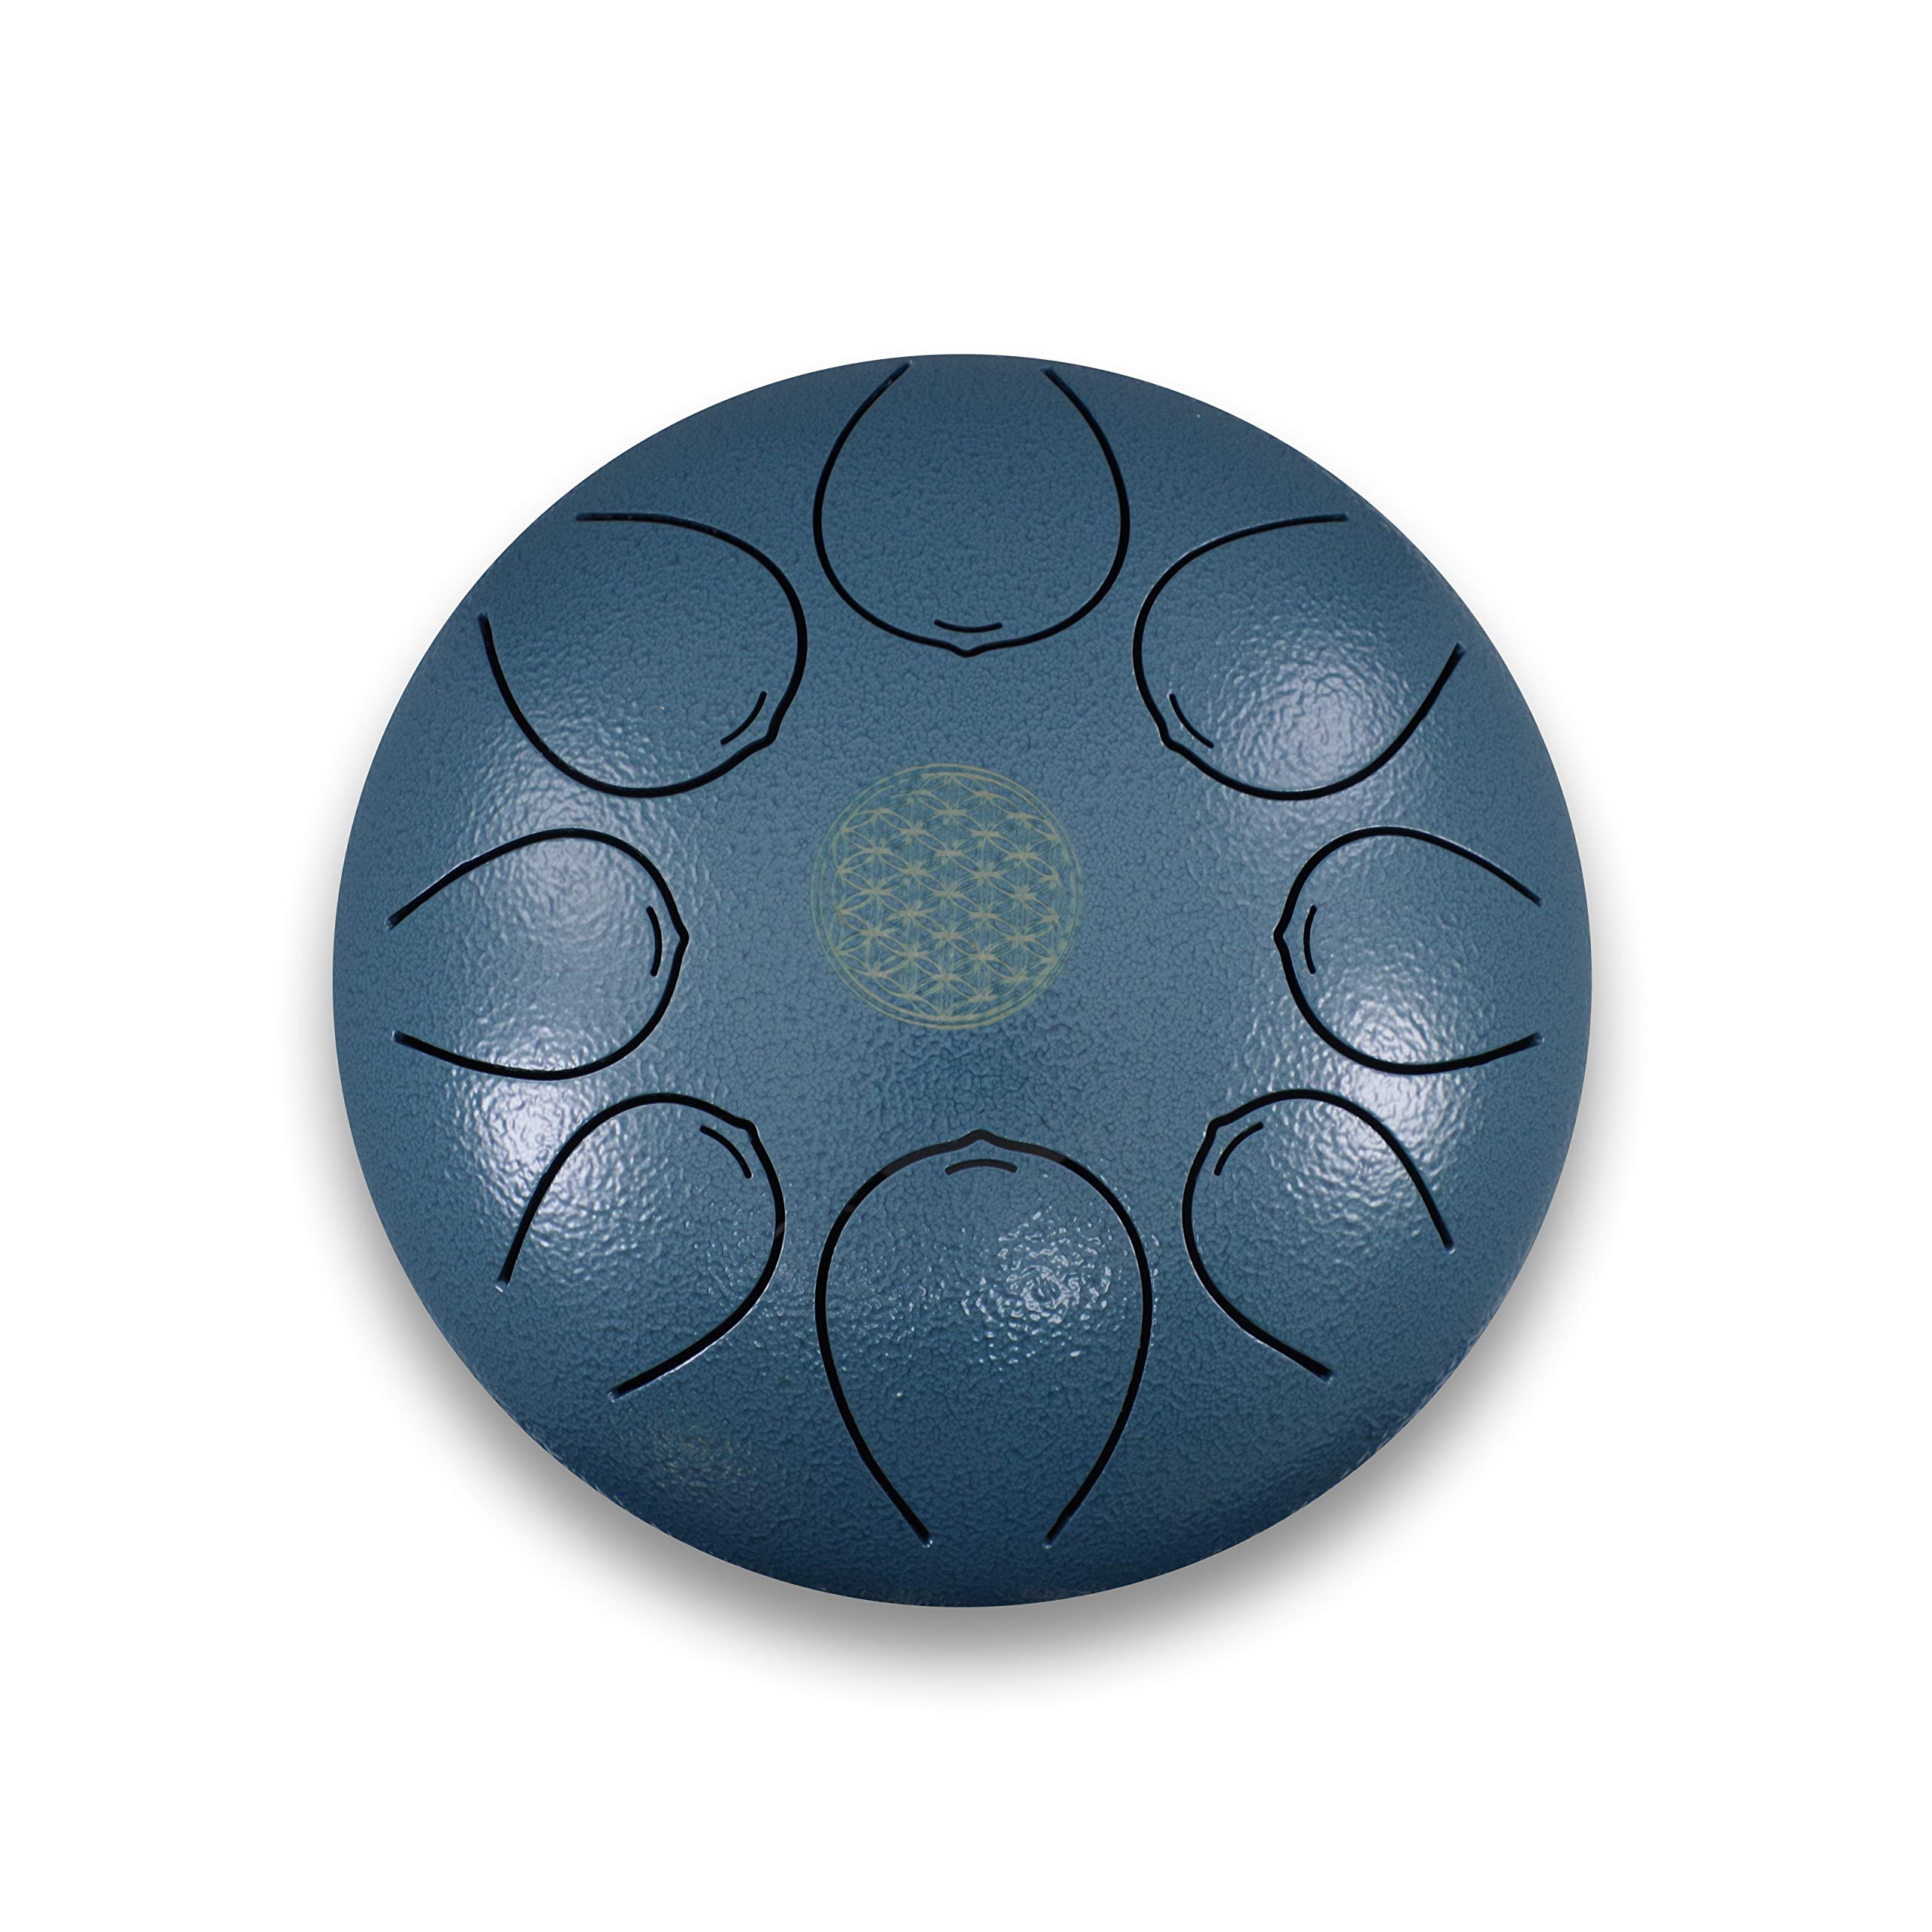 8 inch steel tongue drum pentatonic with 2 mallets and one bag 100% handmade Drum Sound Healing (blue) by WUYOU